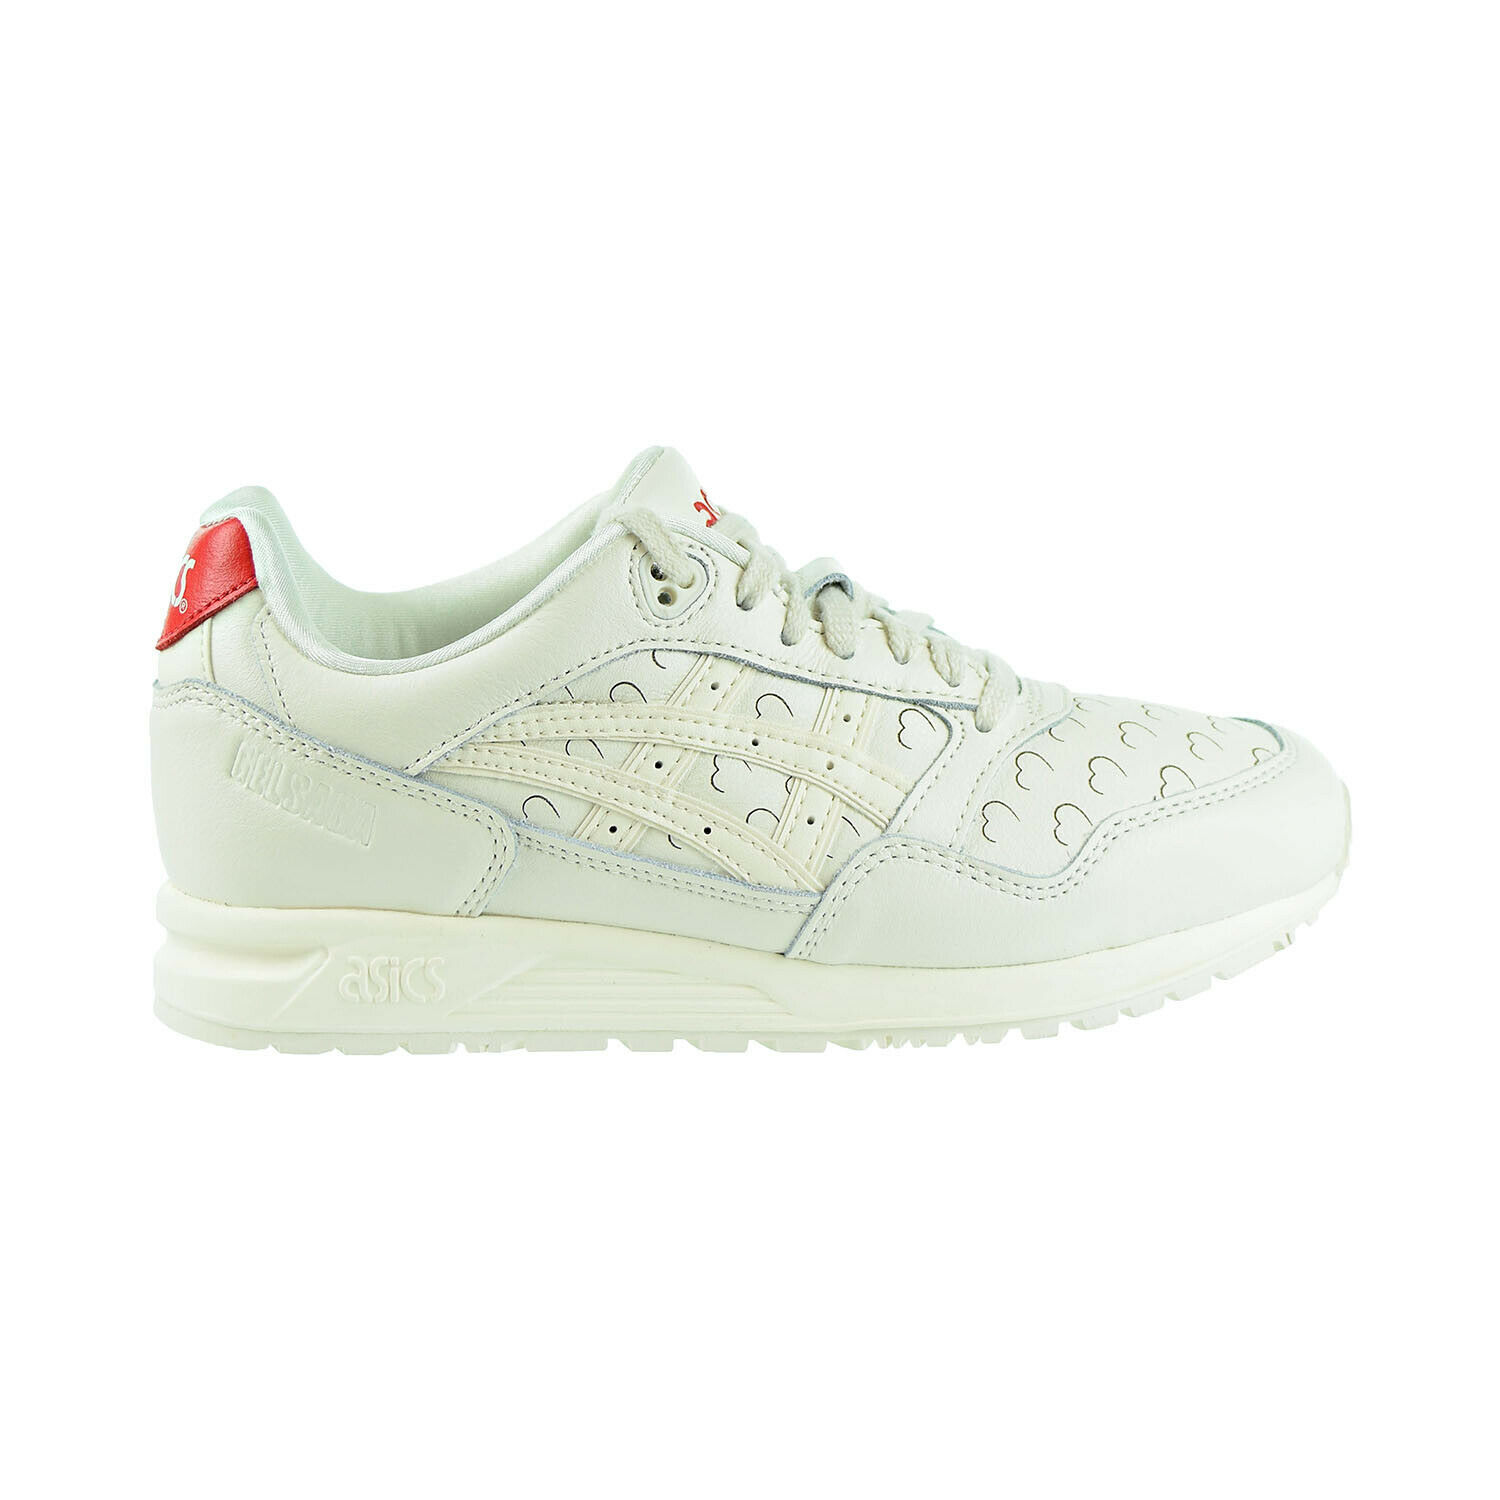 Primary image for Asics Gel-Saga Hearts Women's Shoes Cream-Cream 1192A074-100